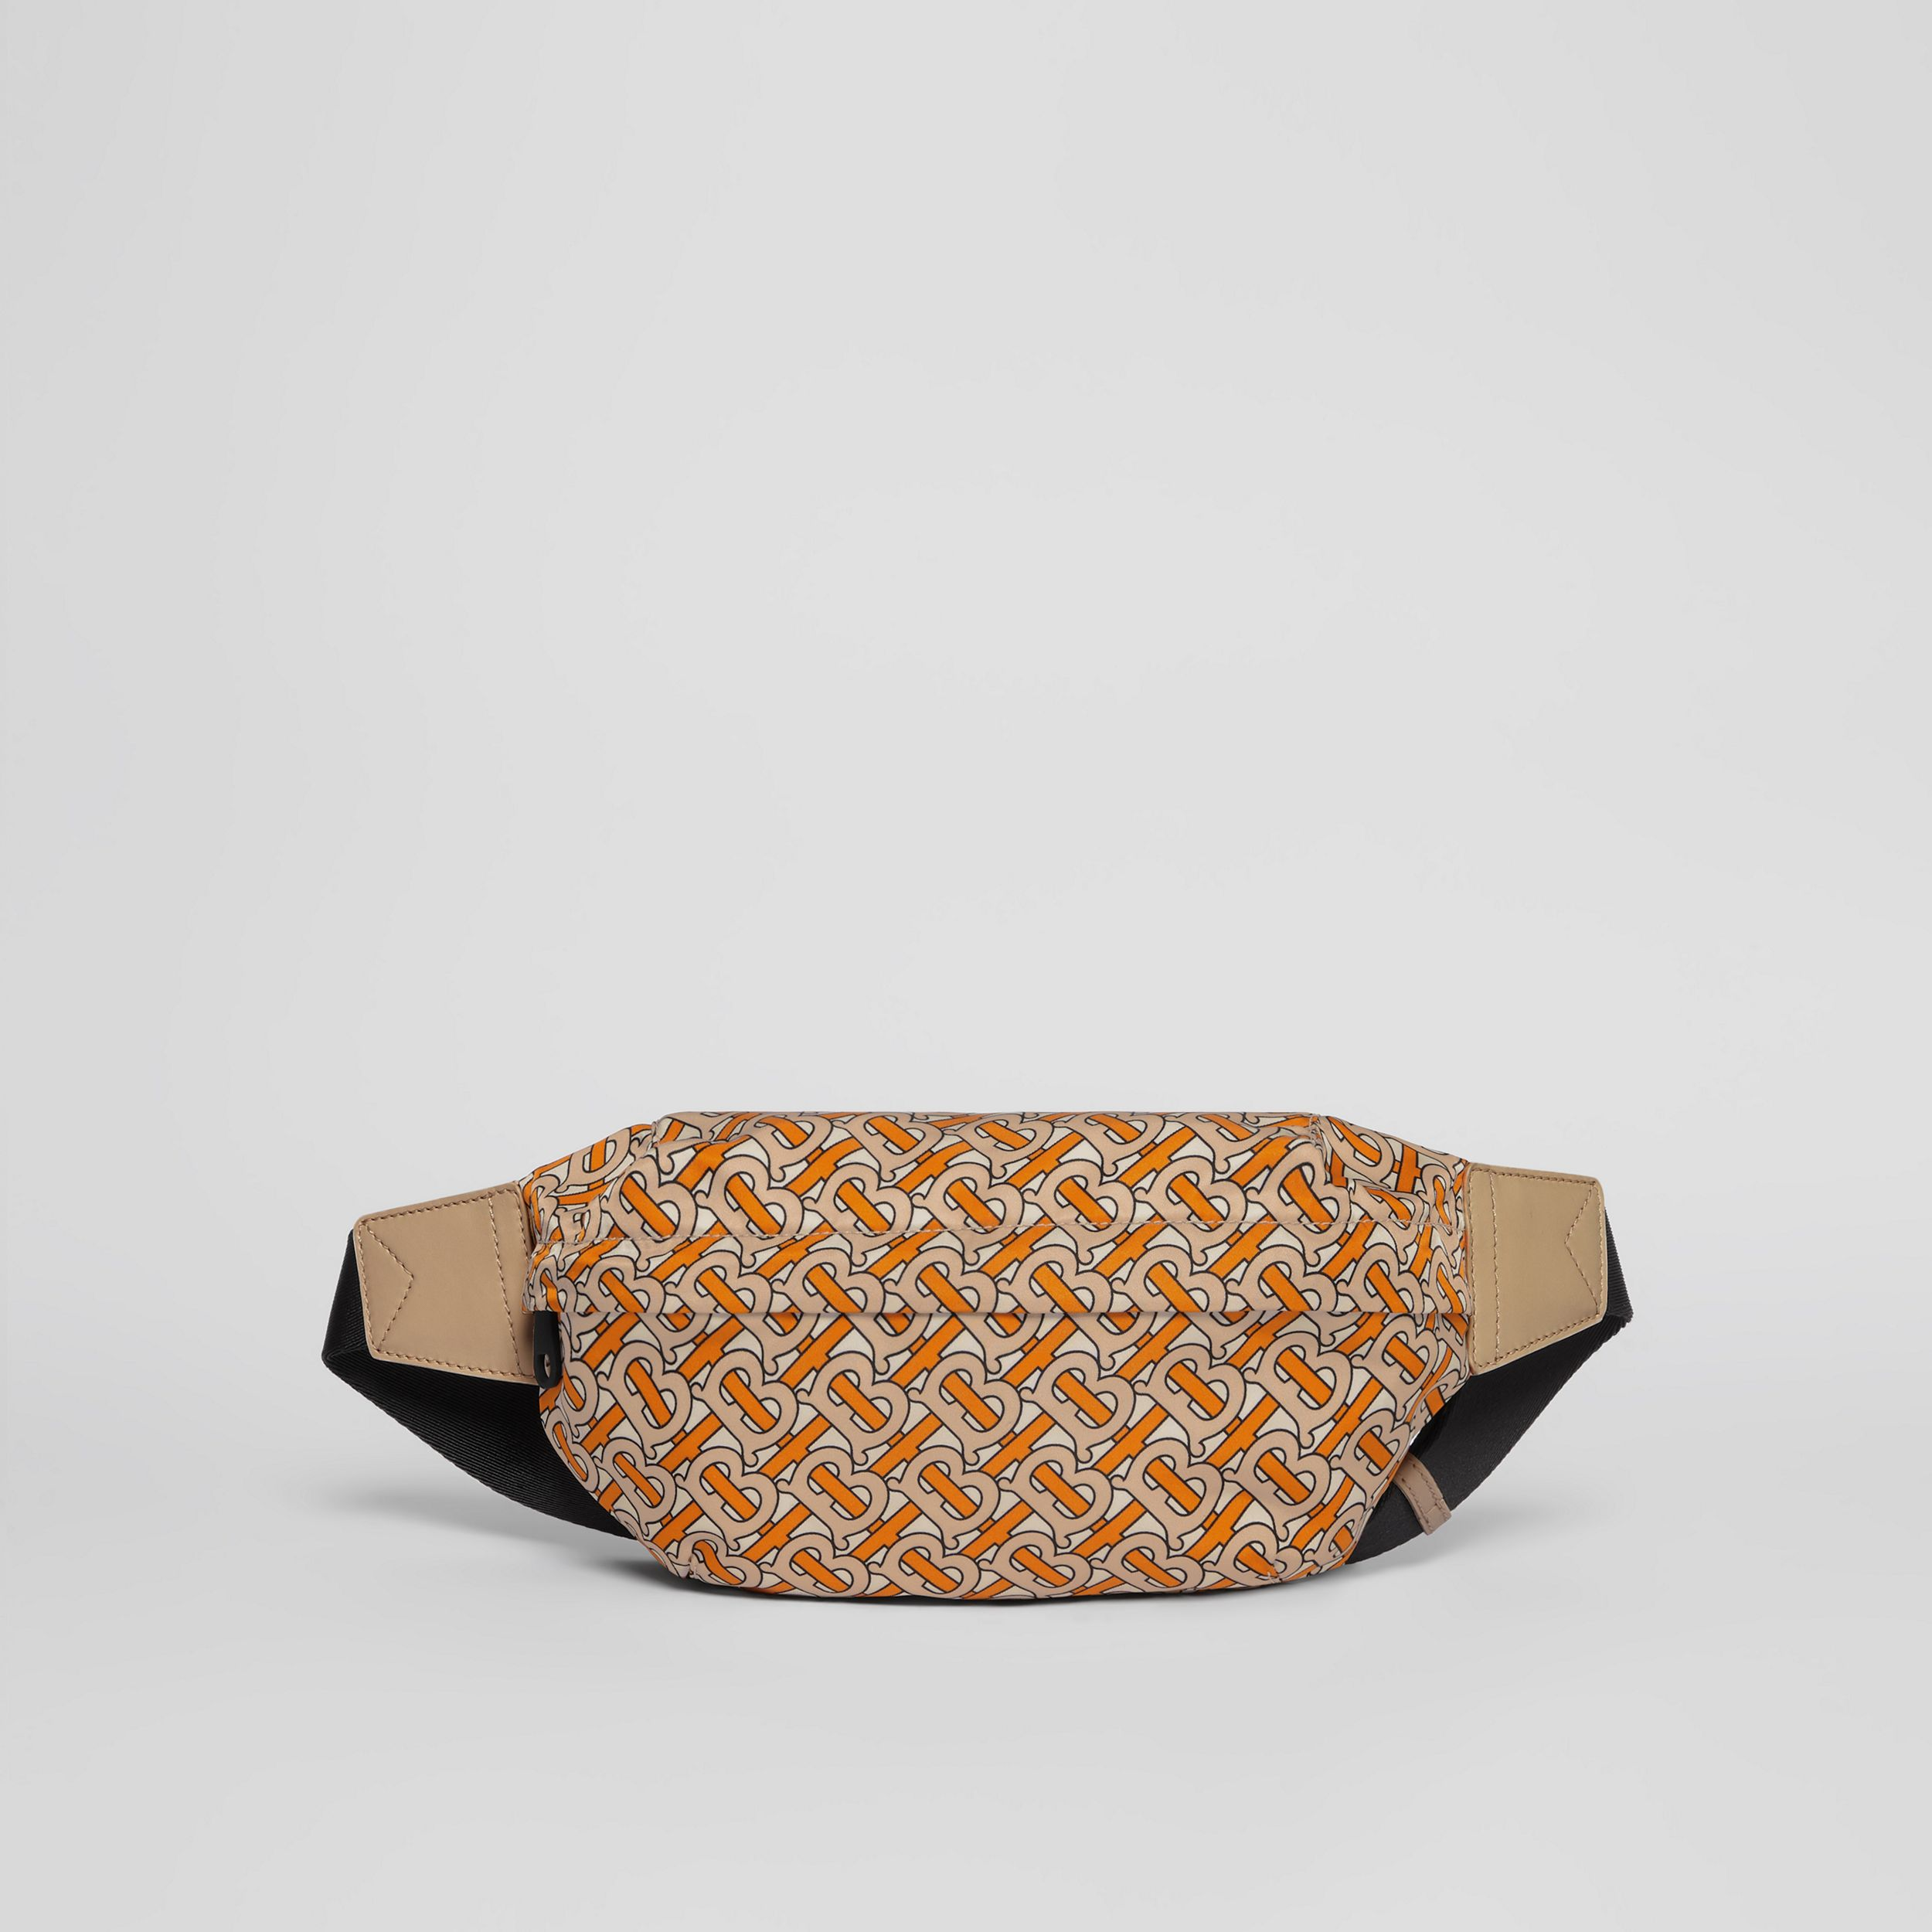 Medium Monogram Print Bum Bag in Bright Orange | Burberry - 1